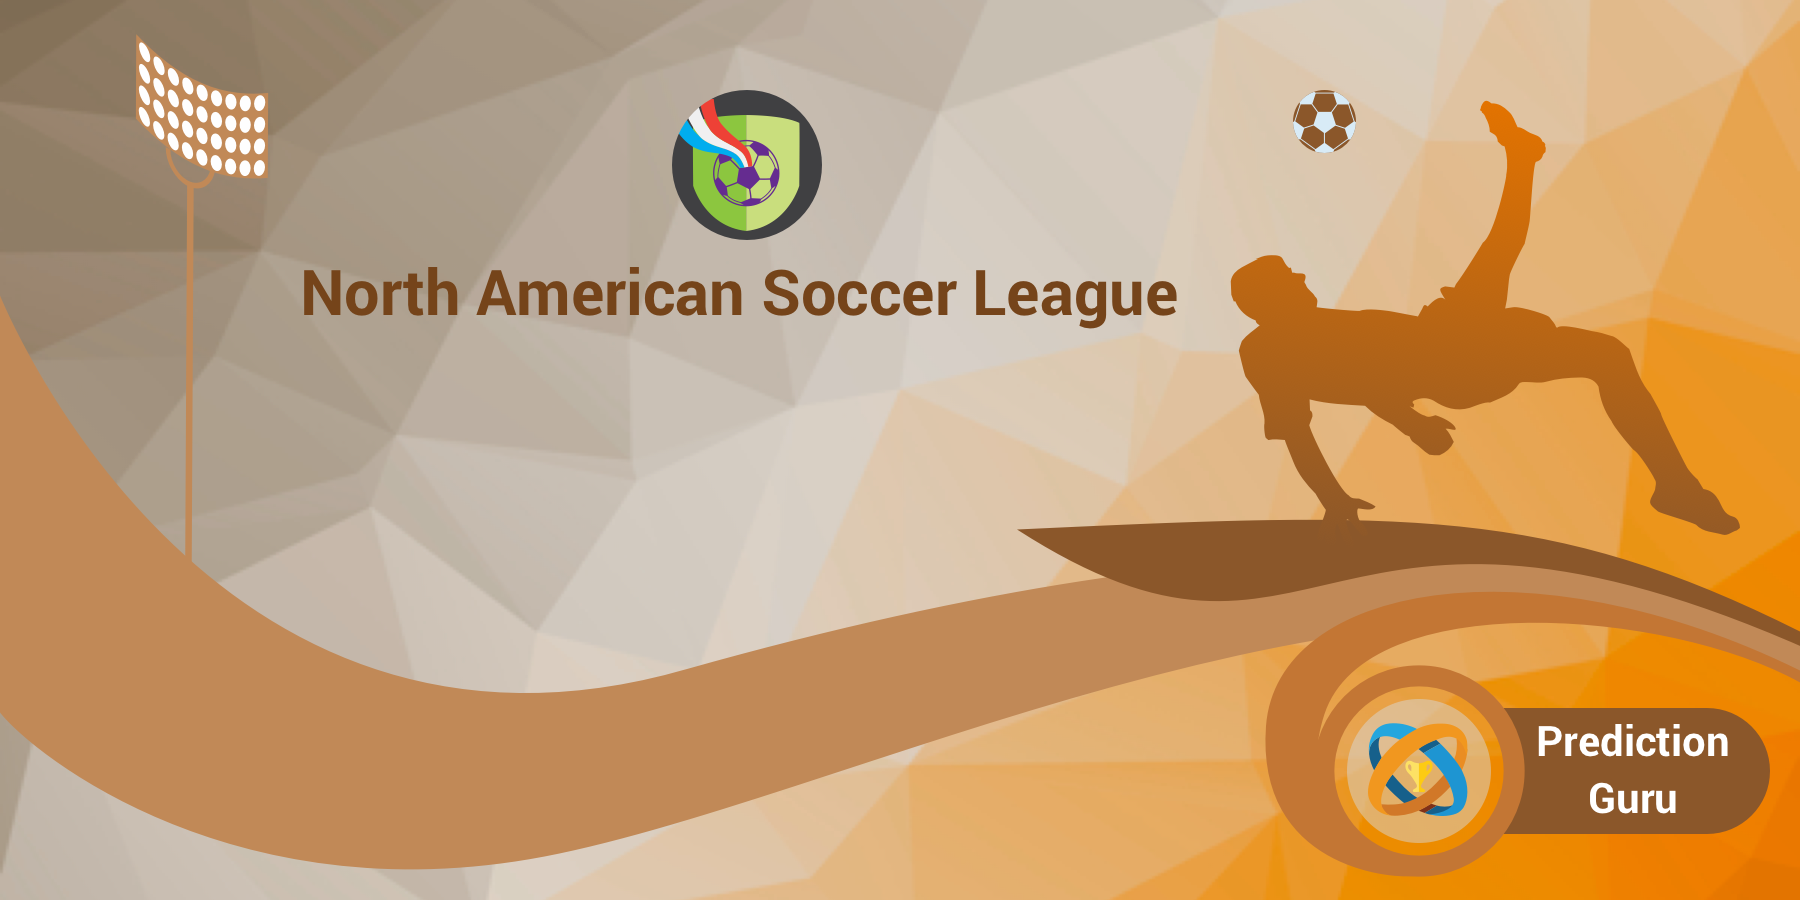 Now Play #NorthAmerica #League, Don't just watch the Game. Start Predicting the game and win